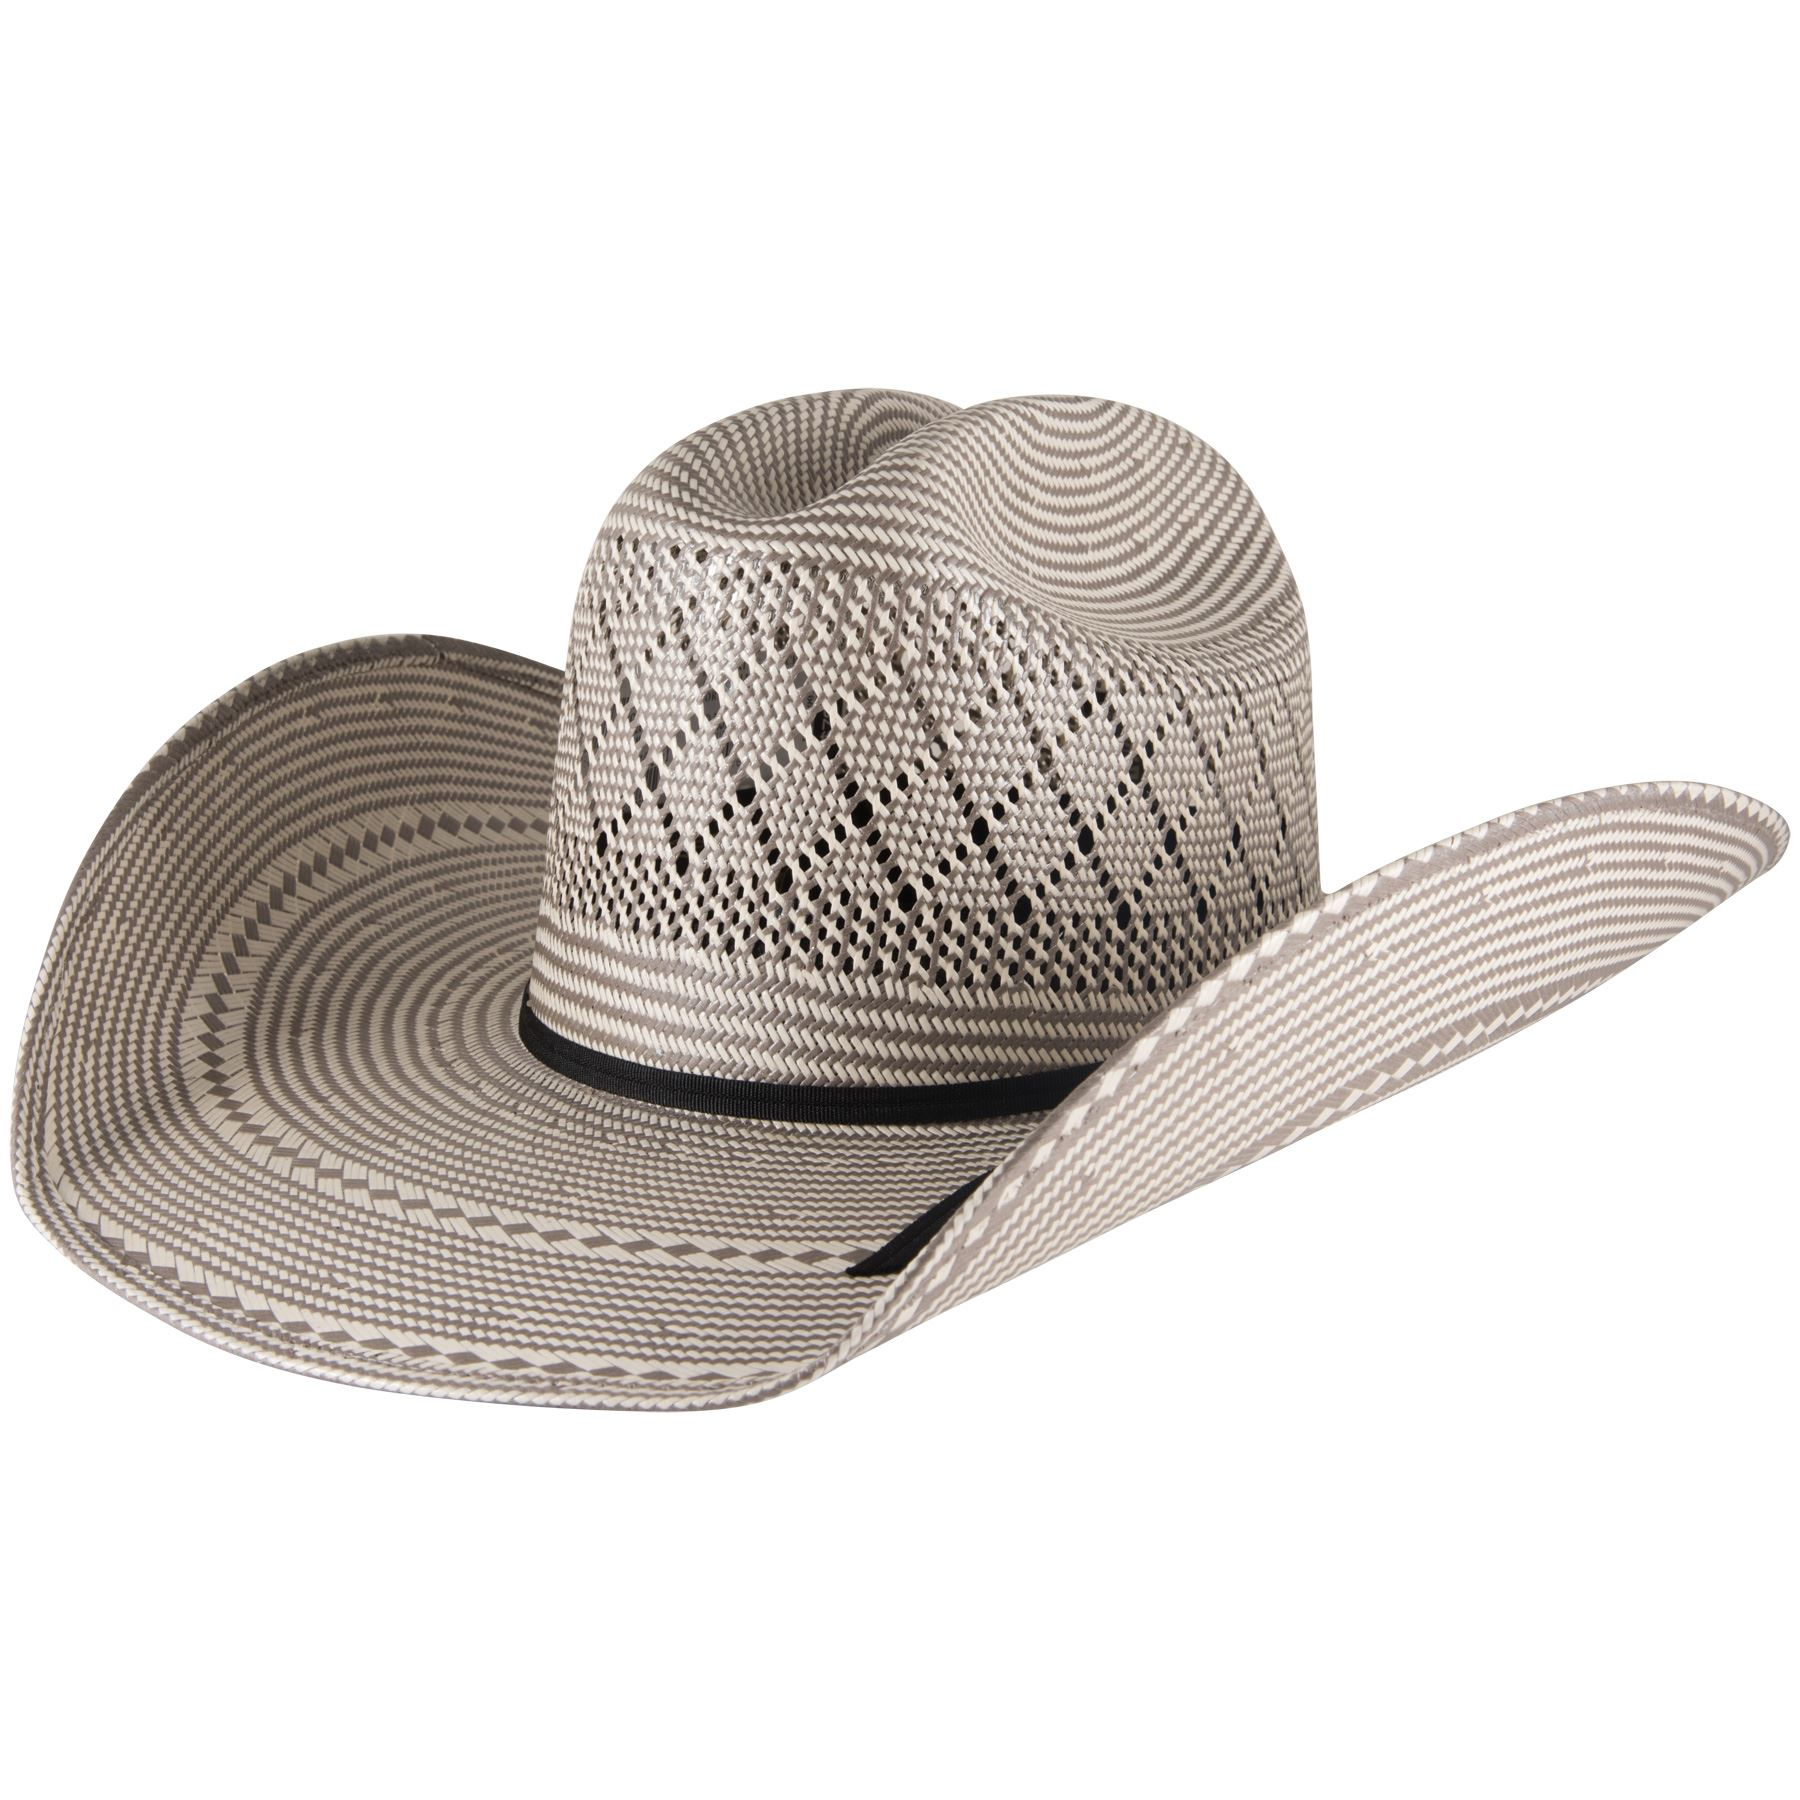 Rodeo King Rancher Straw Cowboy Hat in Apparel Boots at Schneider ... 3ddb037d32d